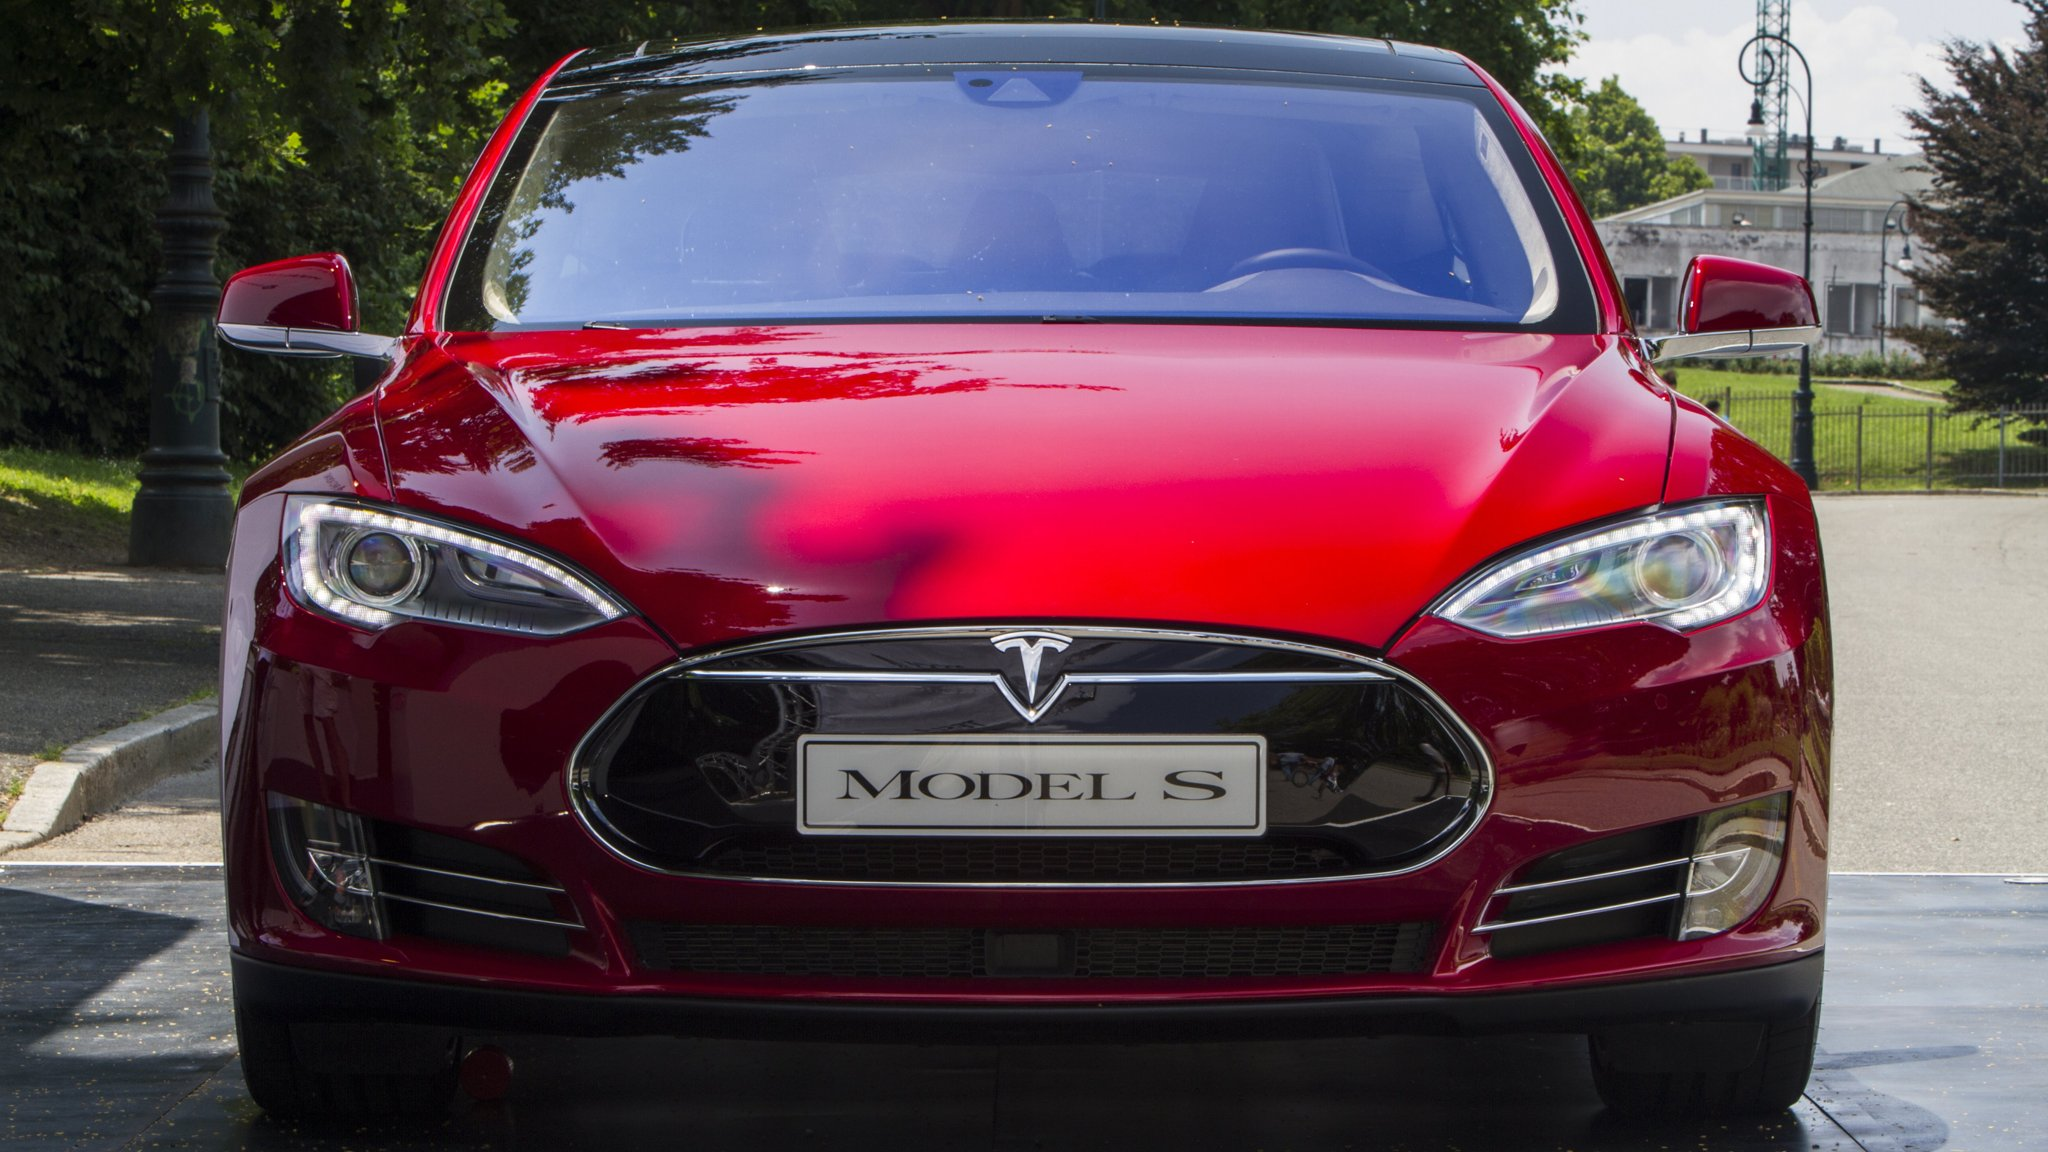 Oil groups \'threatened\' by electric cars | Financial Times